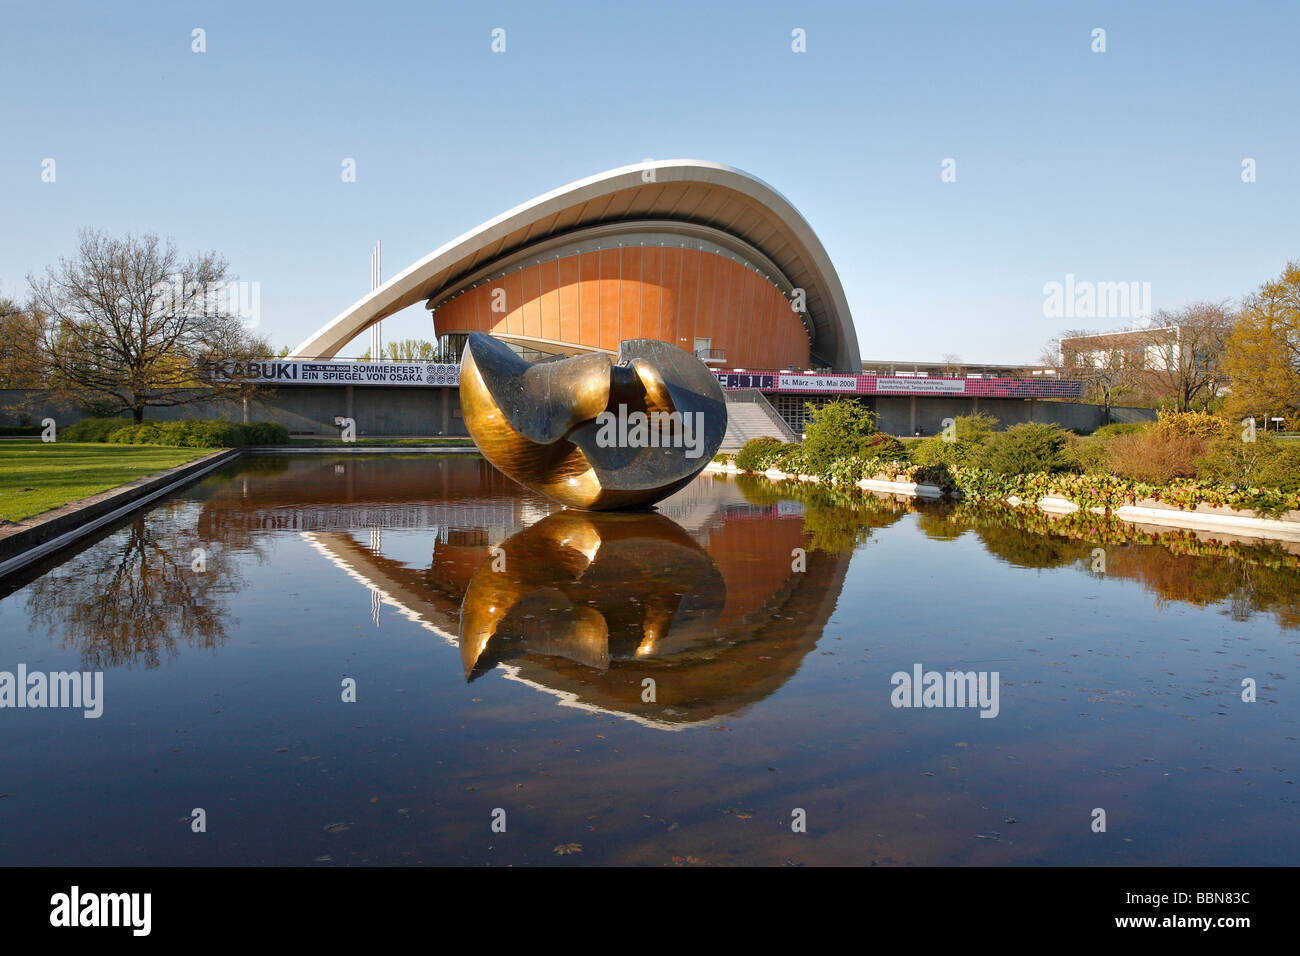 House of World Cultures, HdKW in Berlin, Germany, Europe - Stock Image